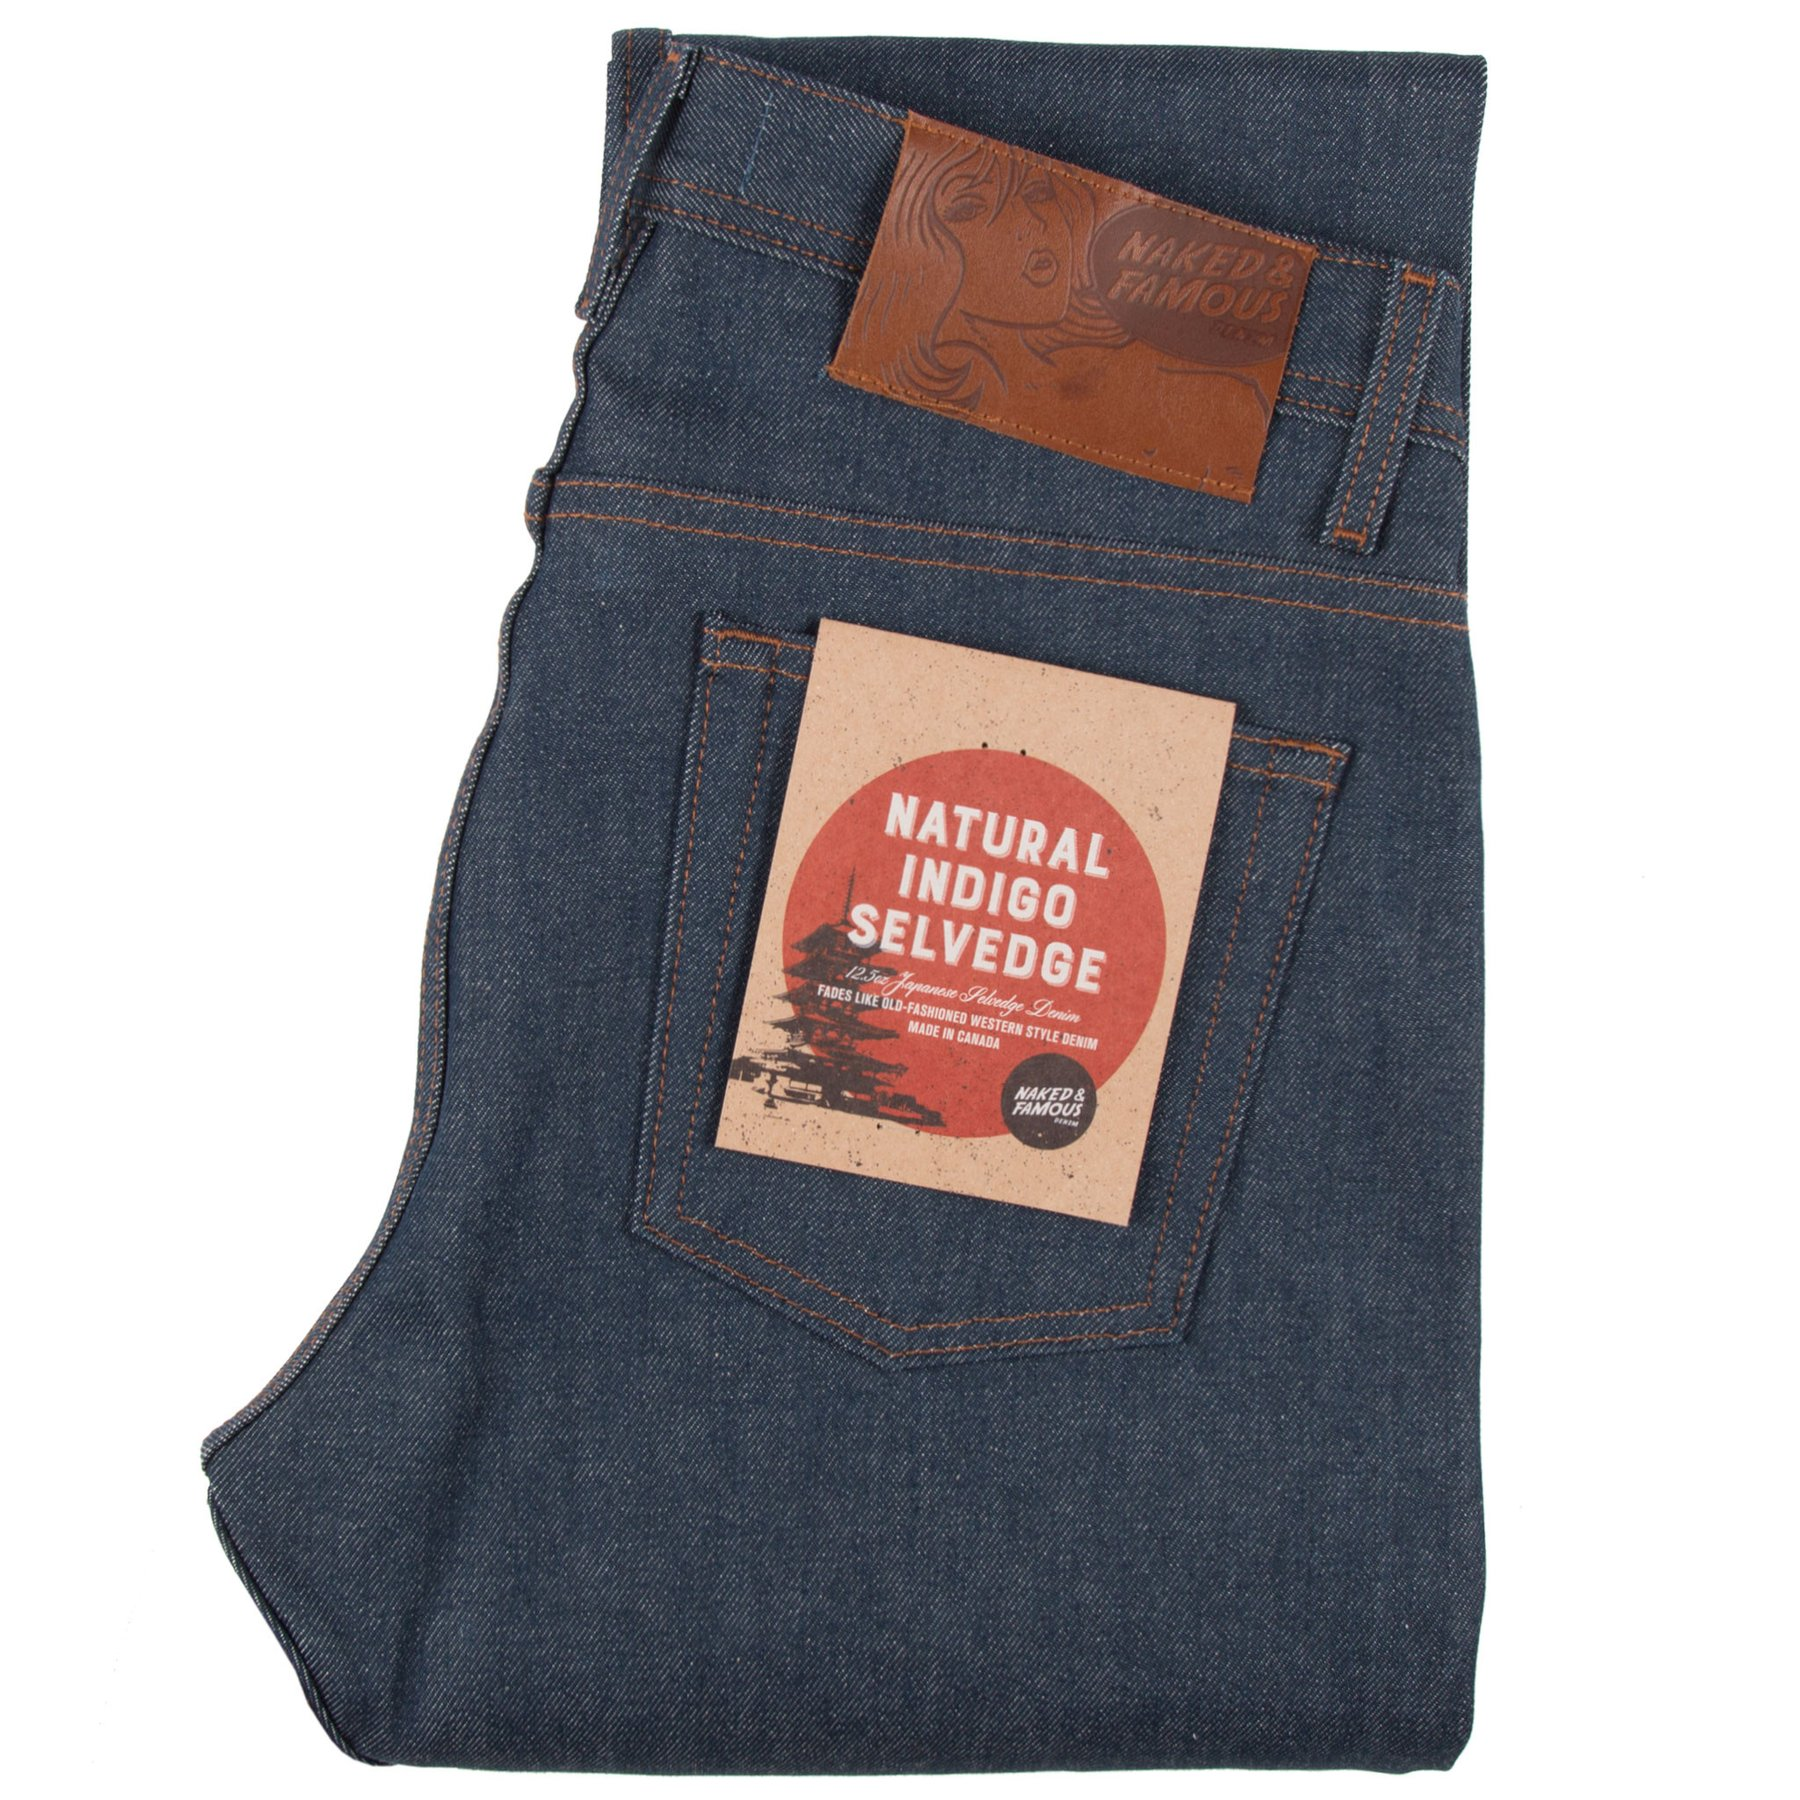 Natural Indigo Selvedge Jeans Folded